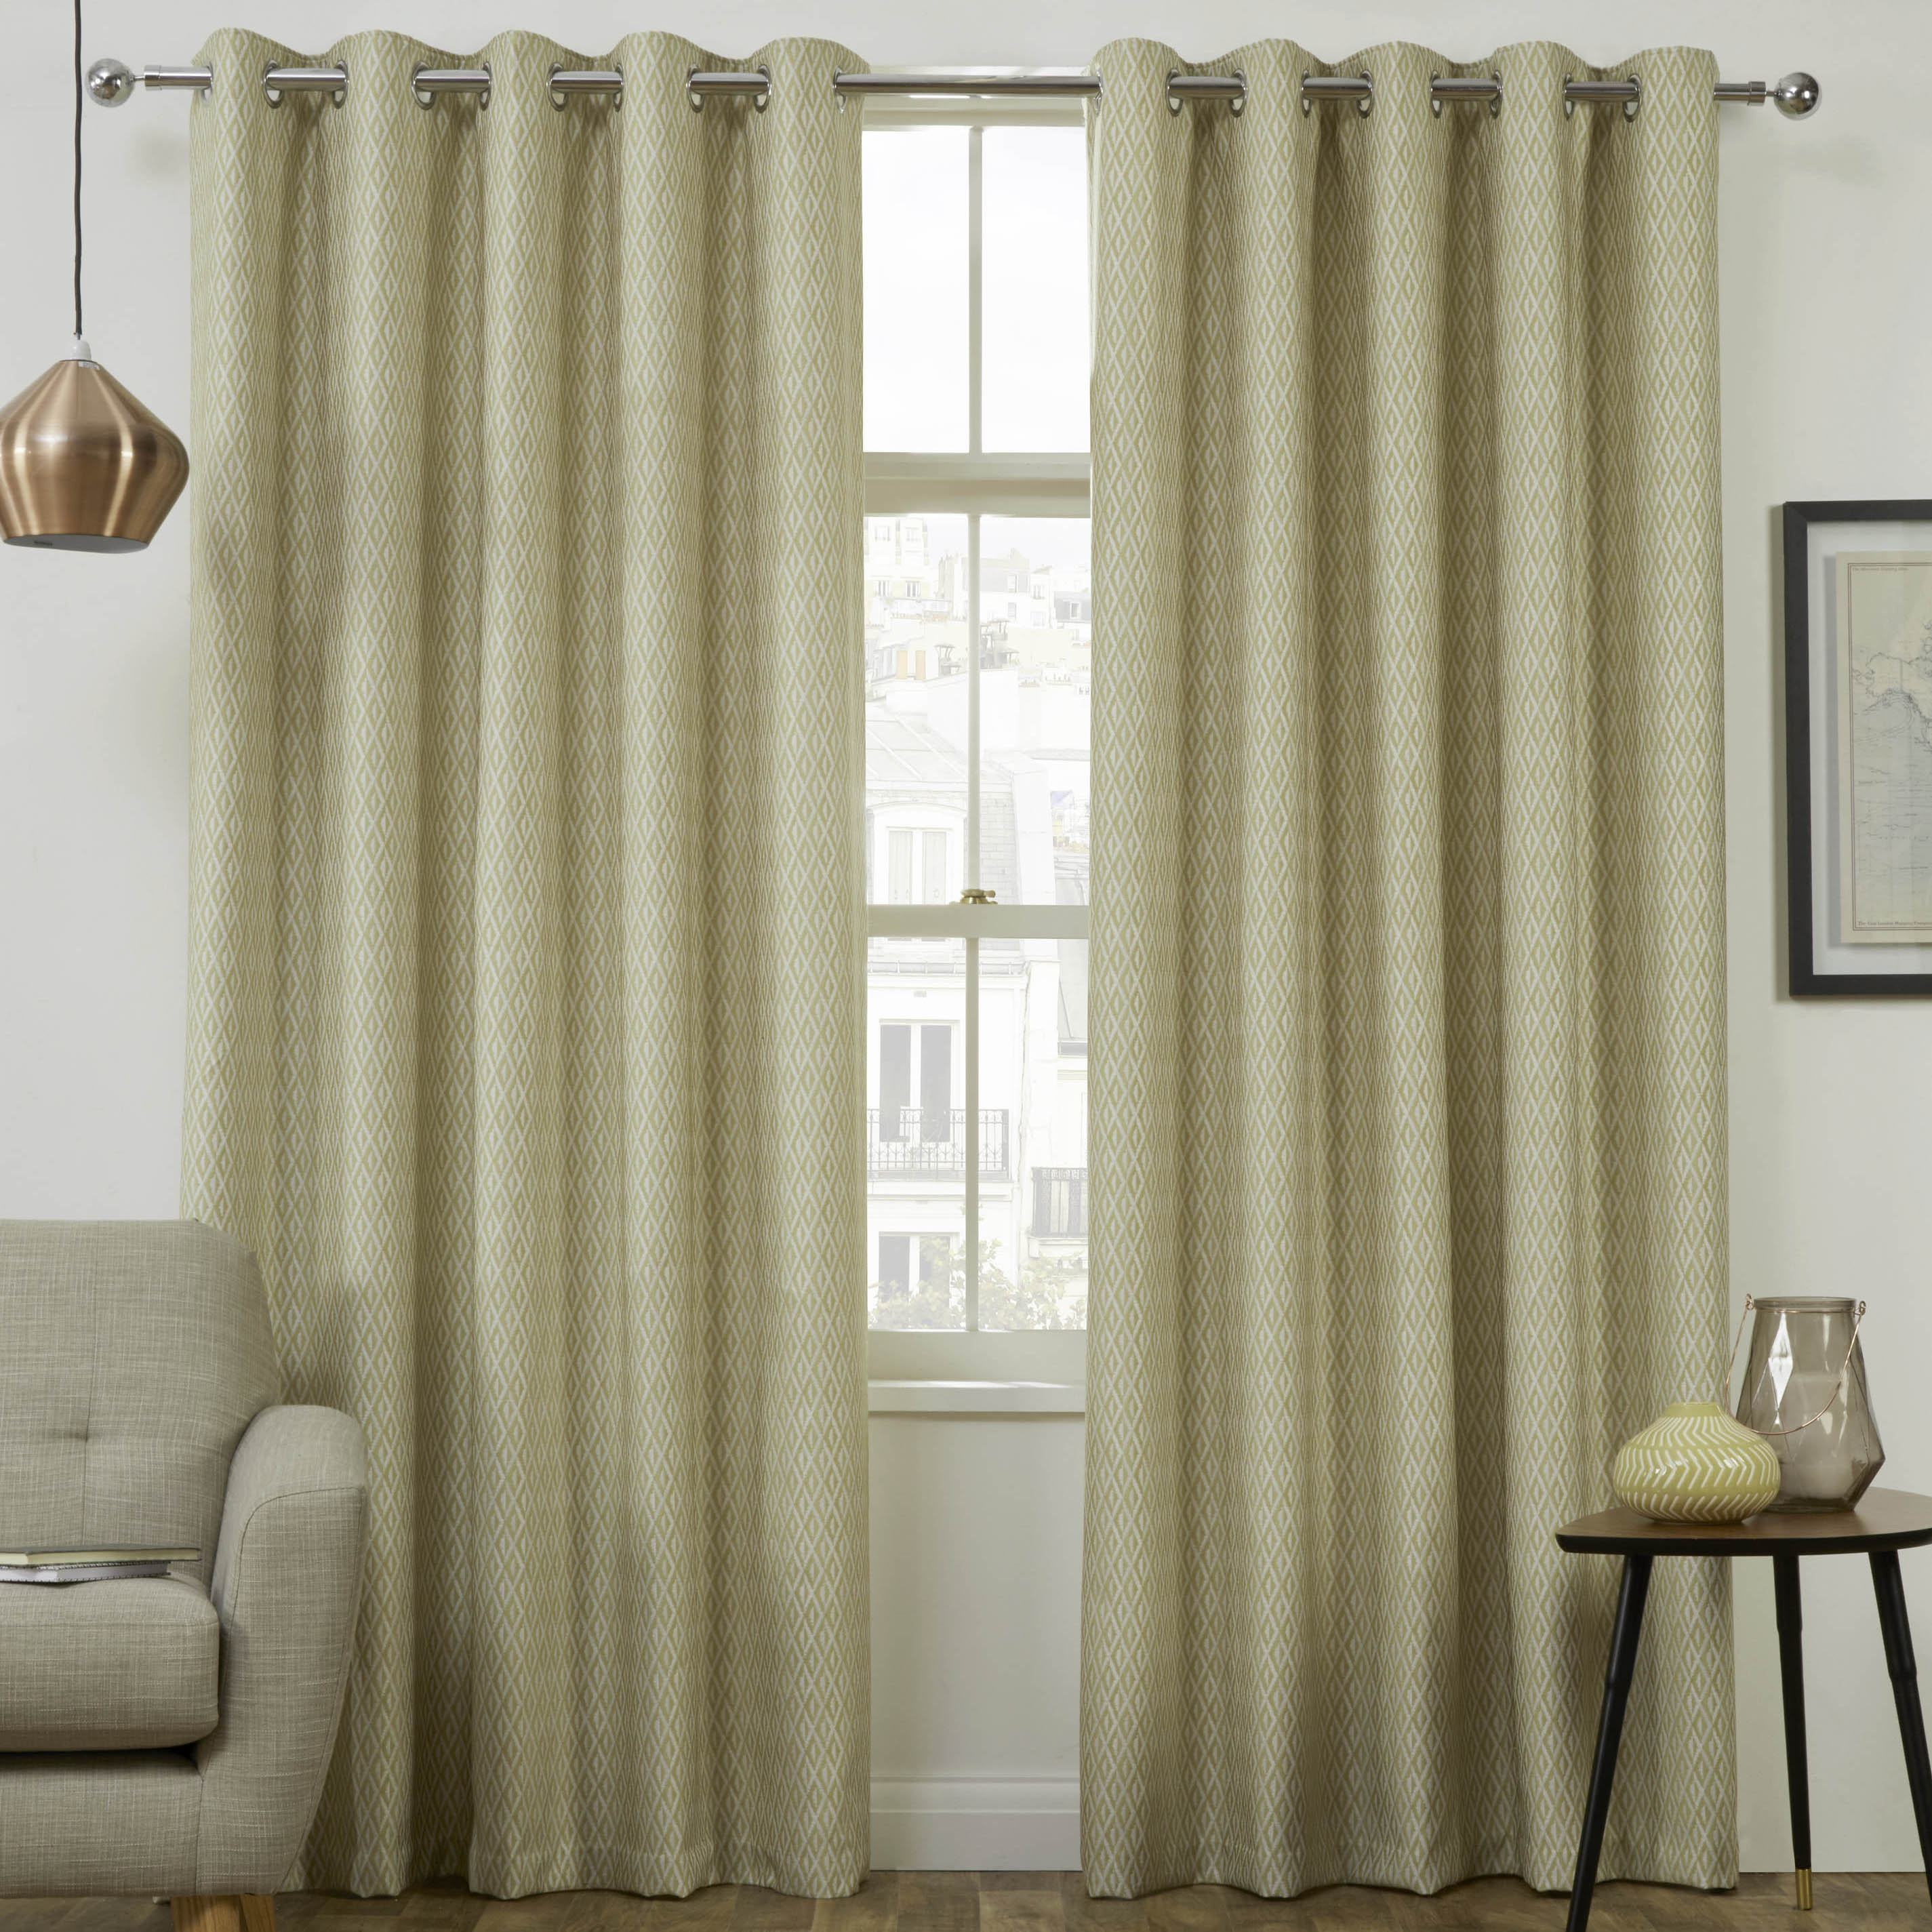 Stockists of Citron Phoenix Thermal Interlined Luxury Ready Made Eyelet Curtains